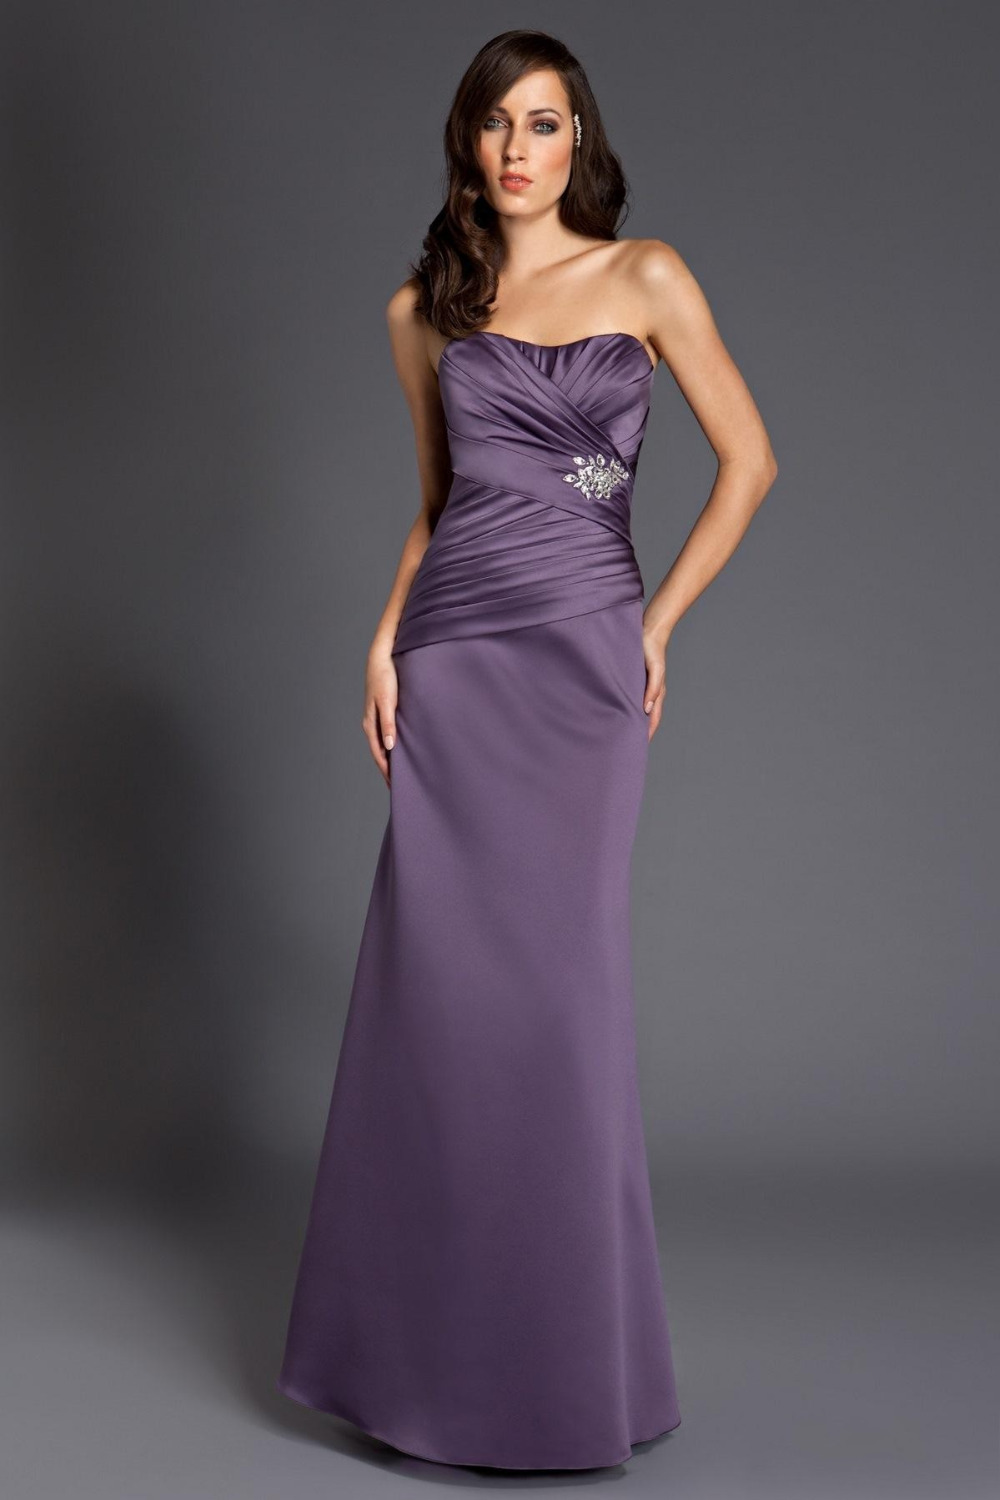 Lavender Bridesmaid Dresses Cheap Gallery - Braidsmaid Dress ...